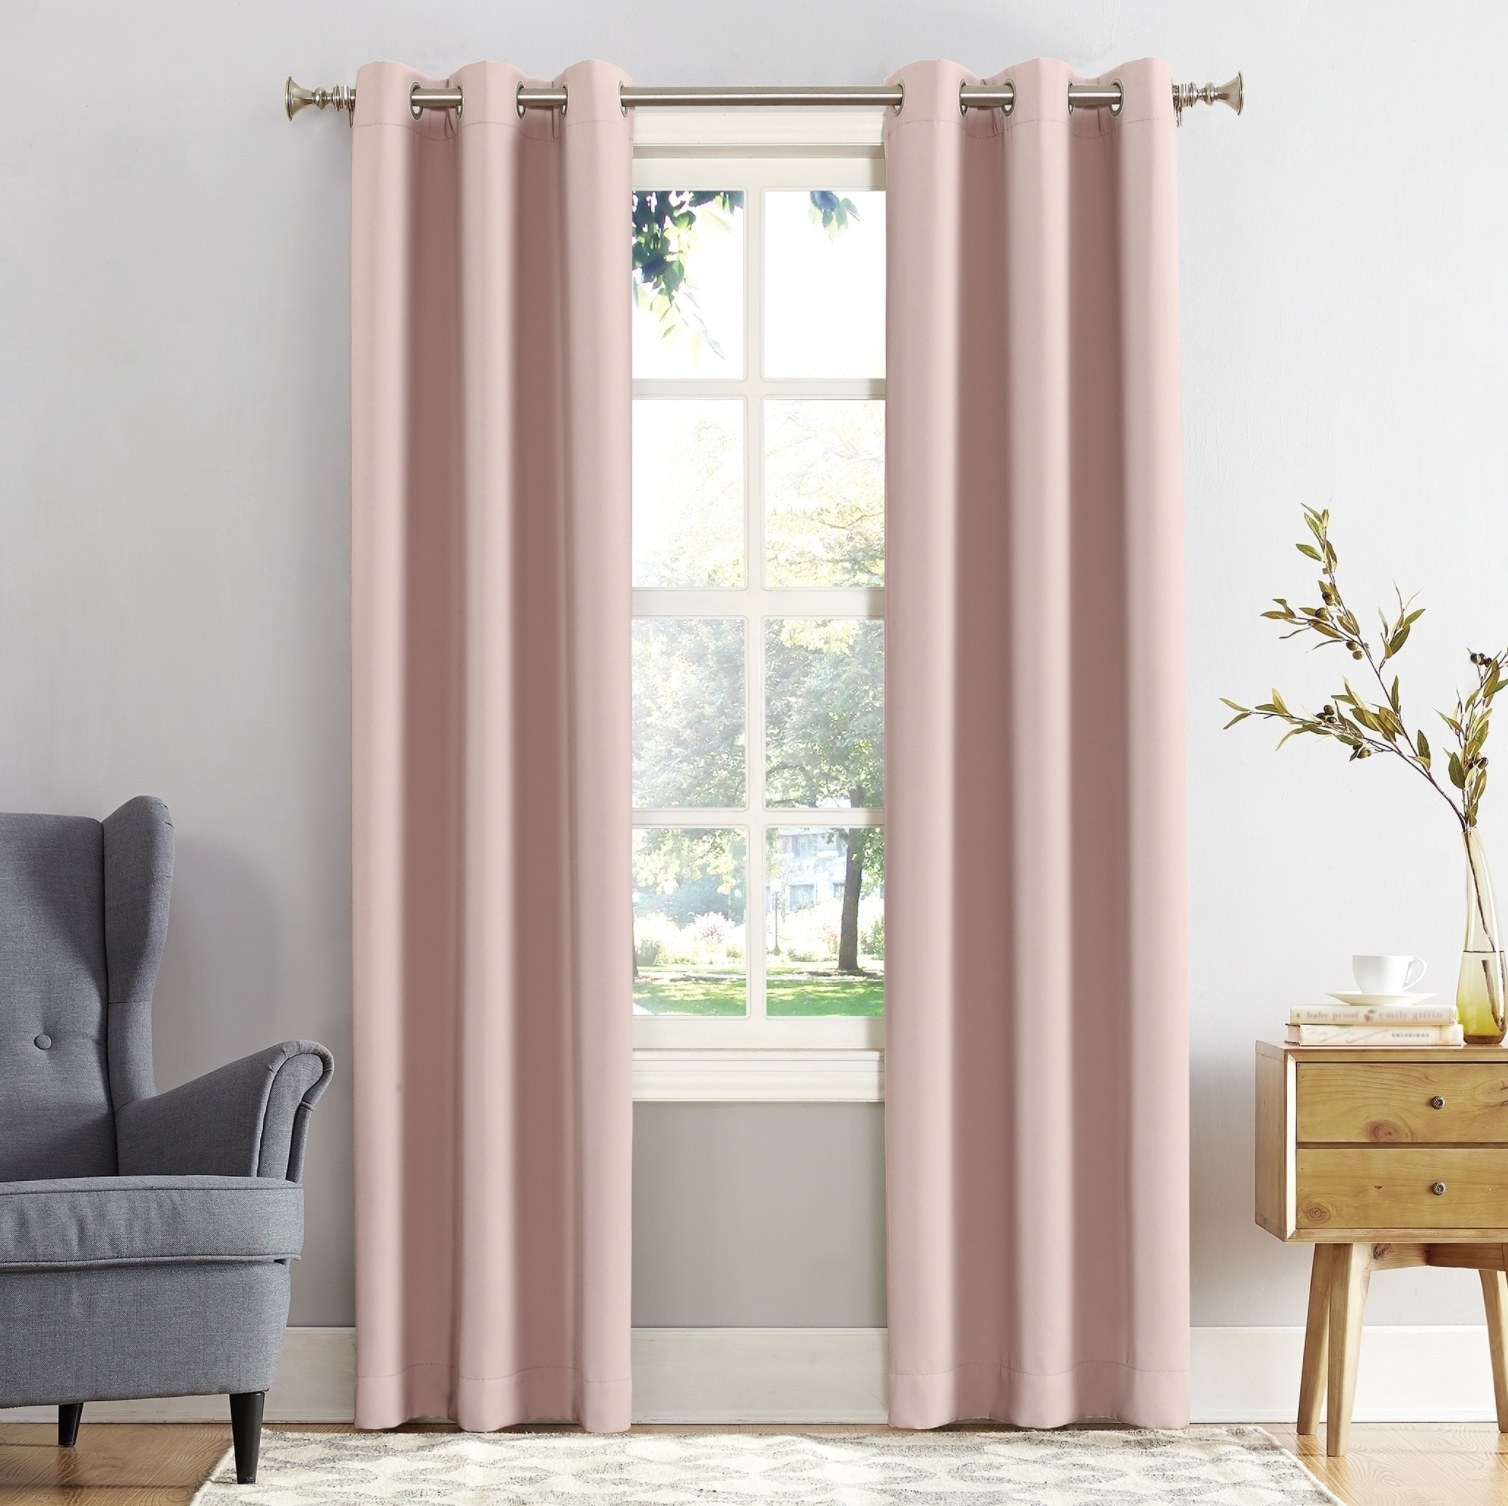 The curtains in blush